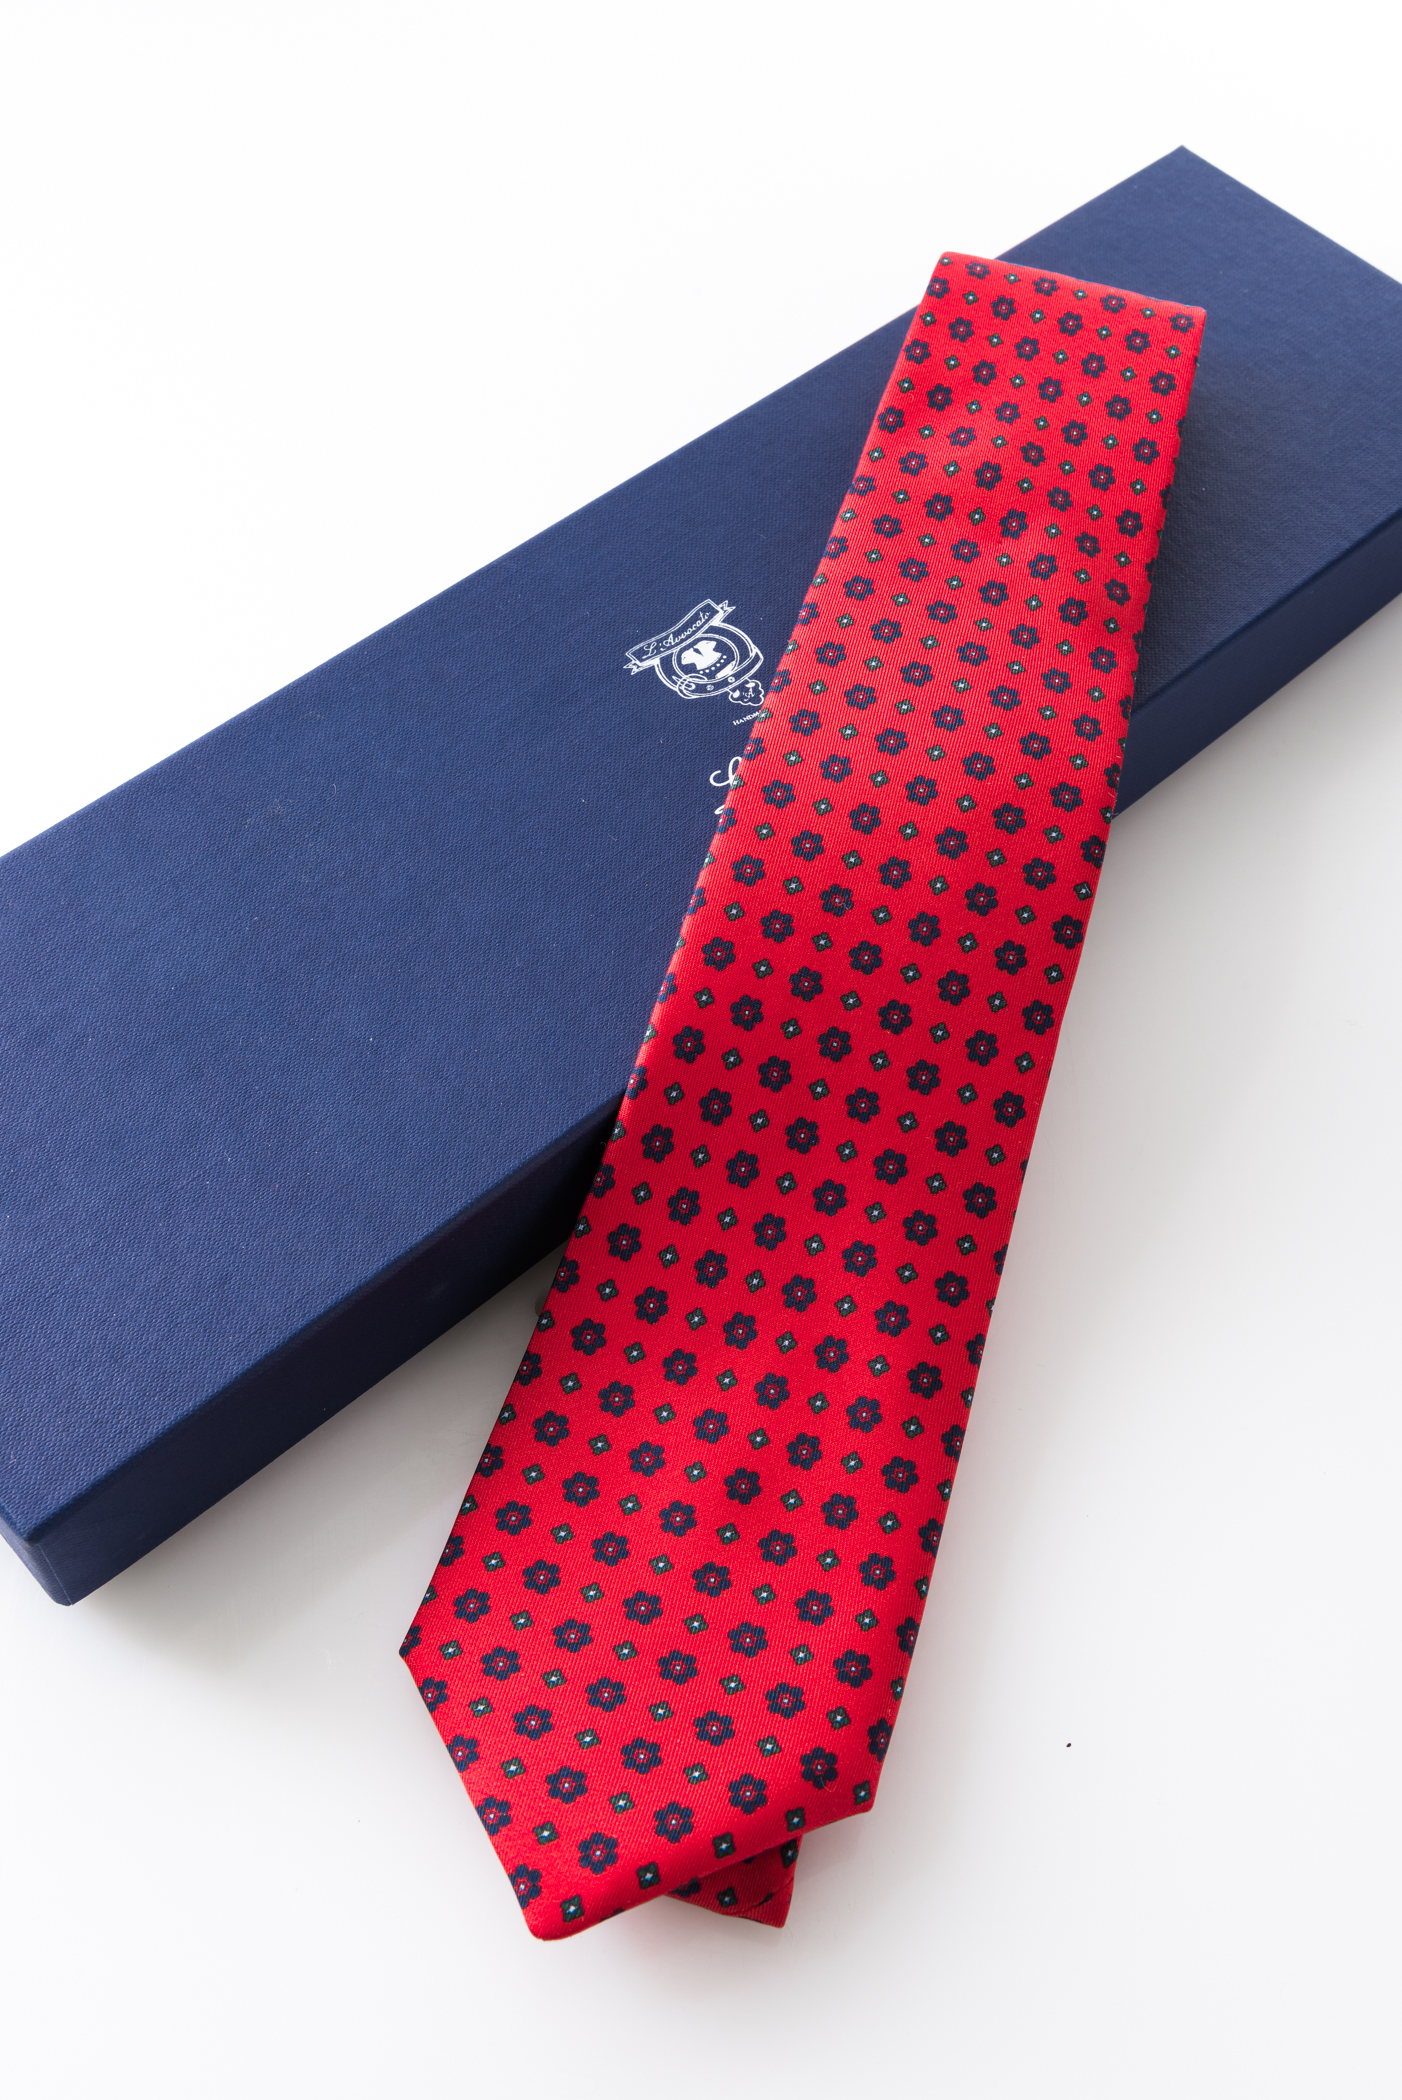 Seven-fold Tie – Clara Rosso – and its packaging